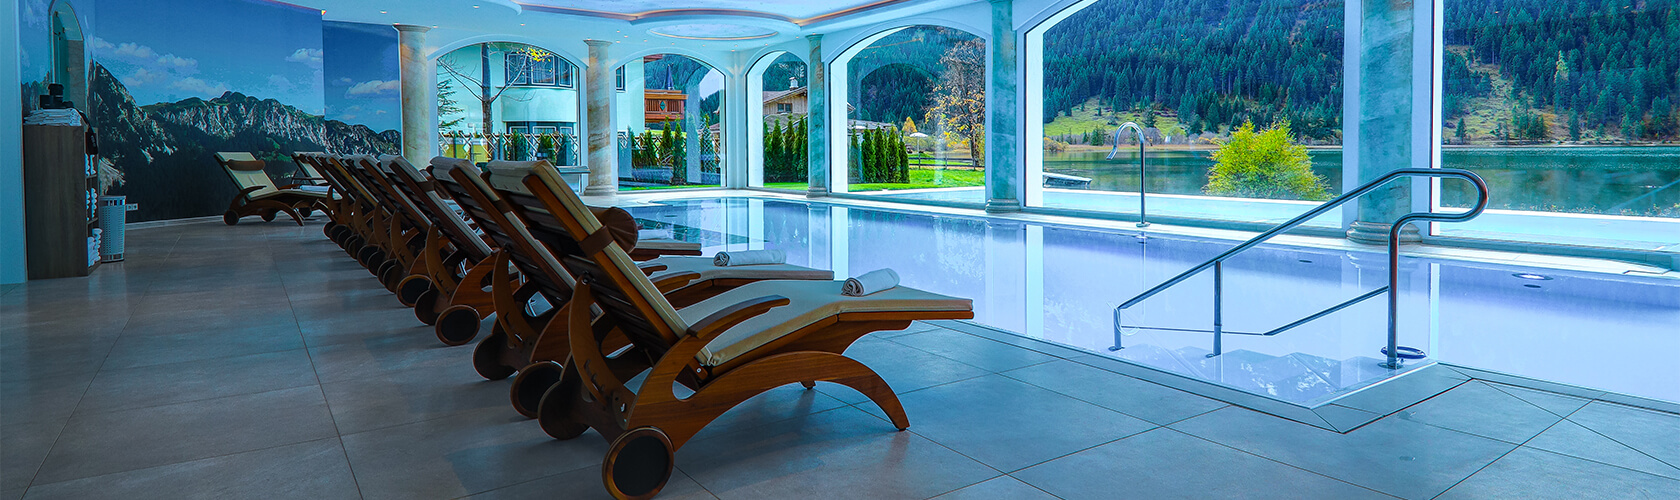 Wellness am Haldensee im Hotel Via Salina